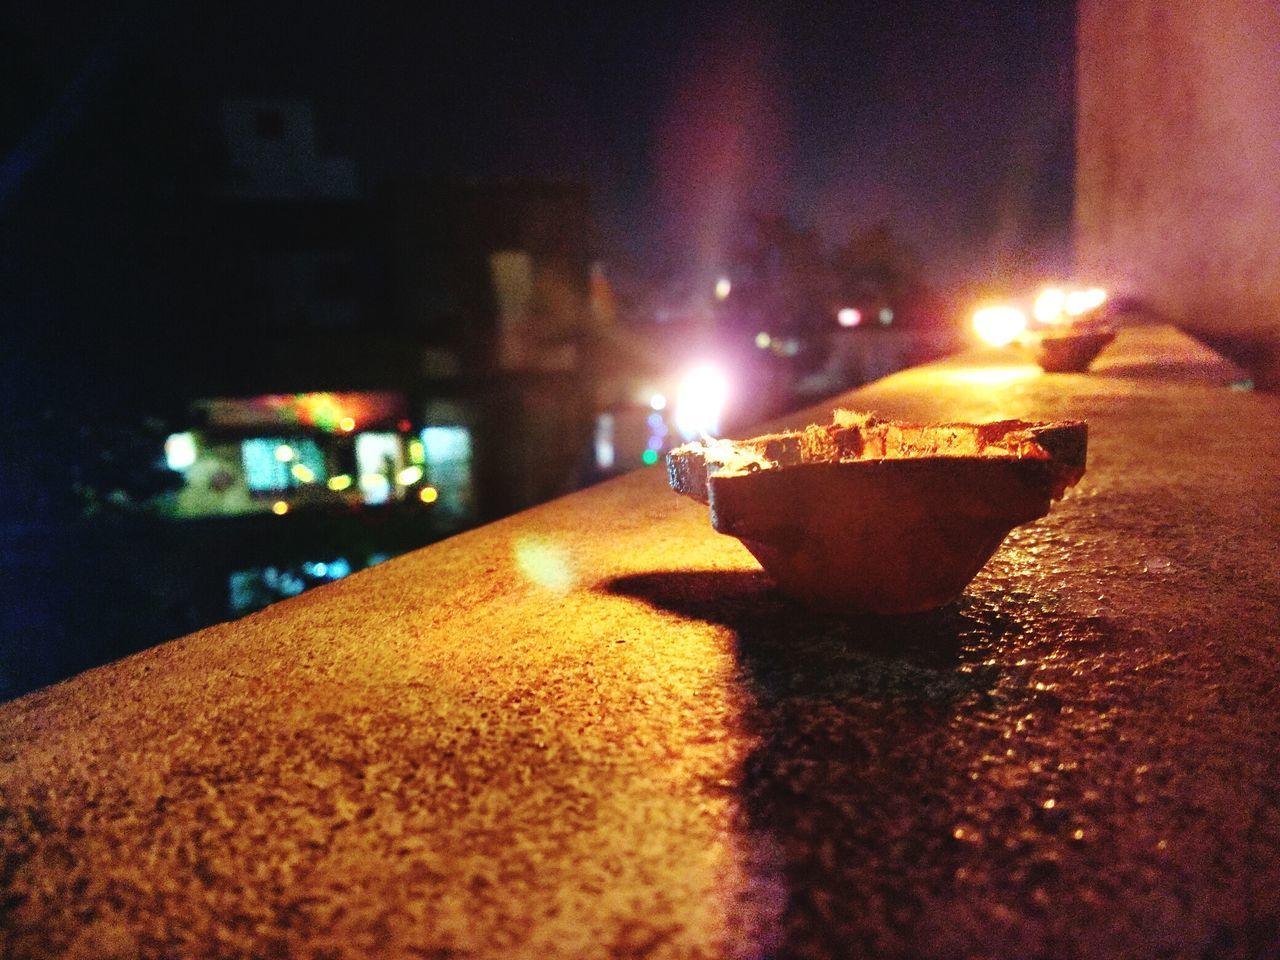 Diwali is one of the biggest festival of India. small lamps are known as symbol of this festival it lasted till a 5 days. Diwali Lights